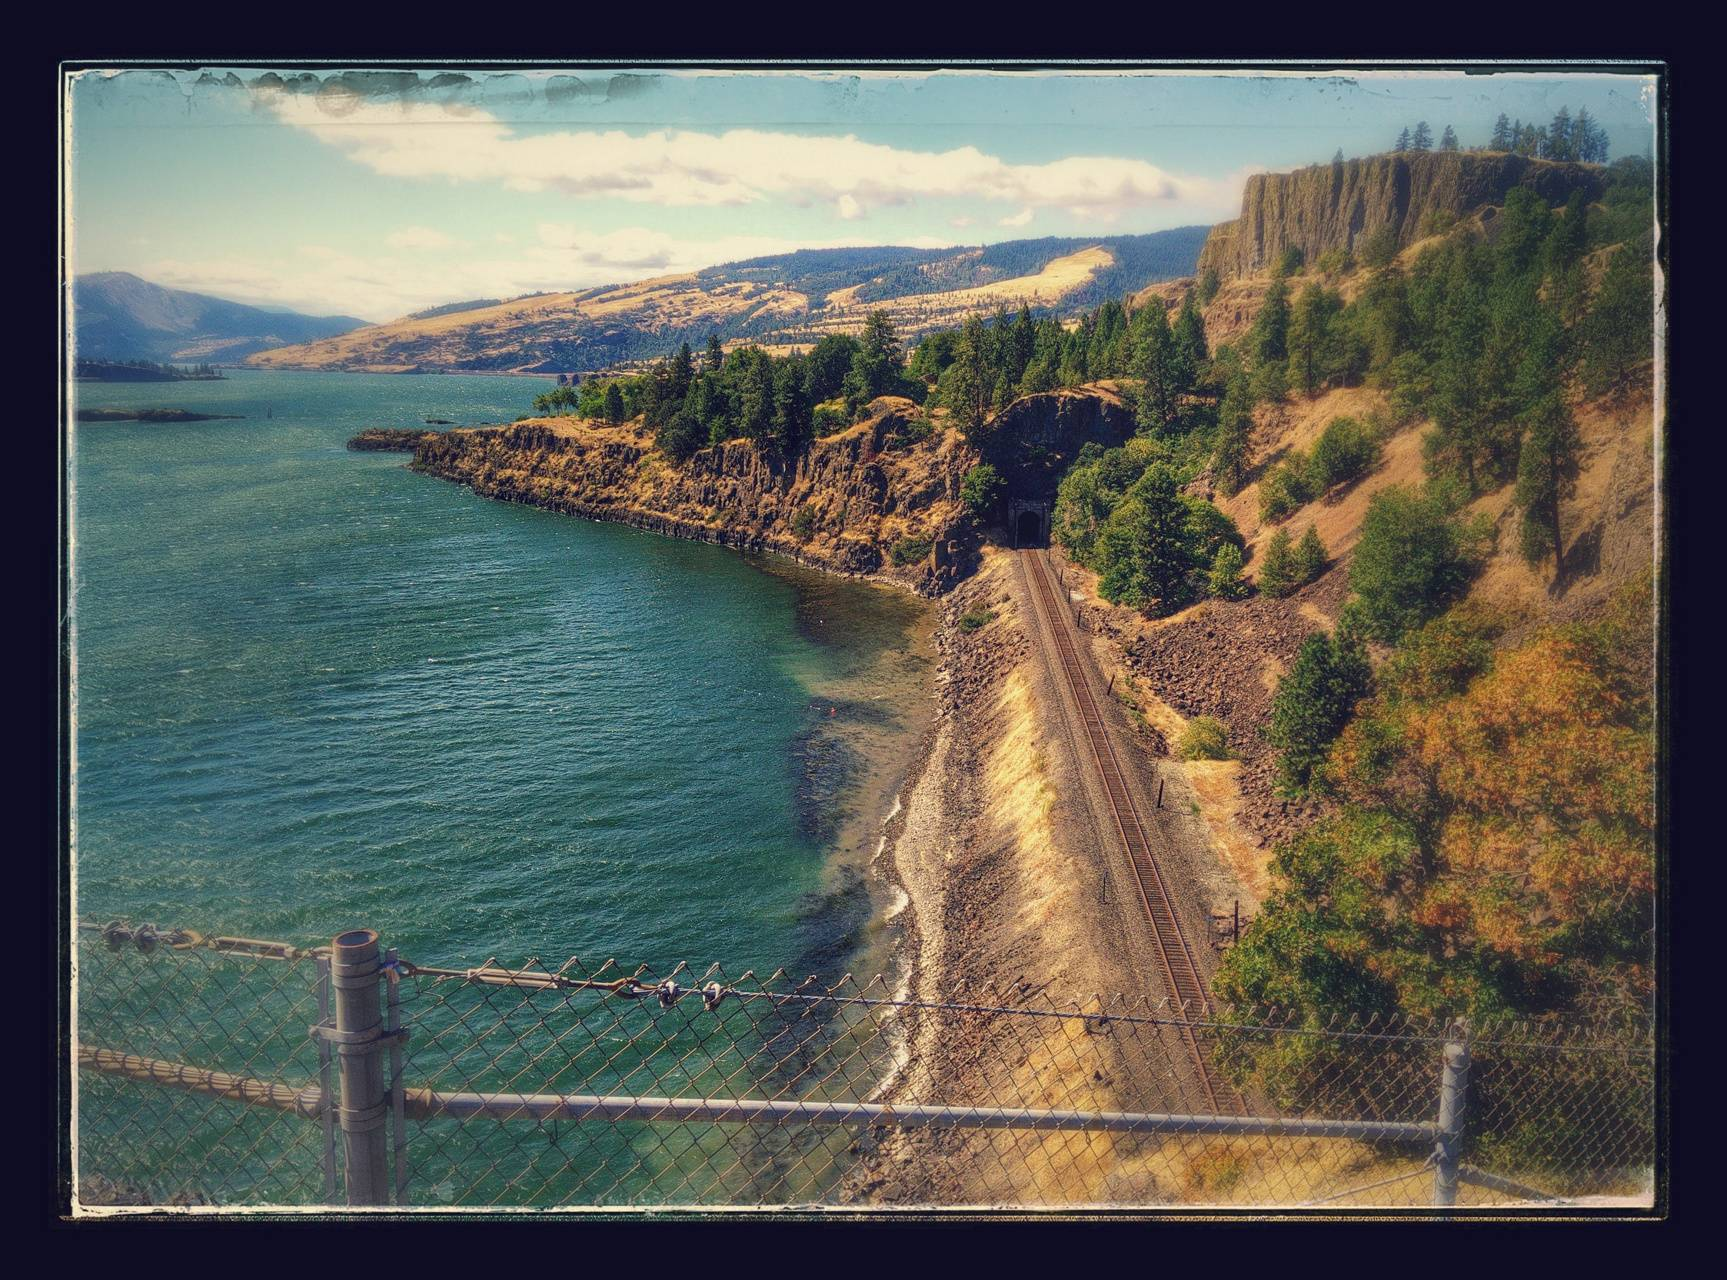 Track at the Gorge